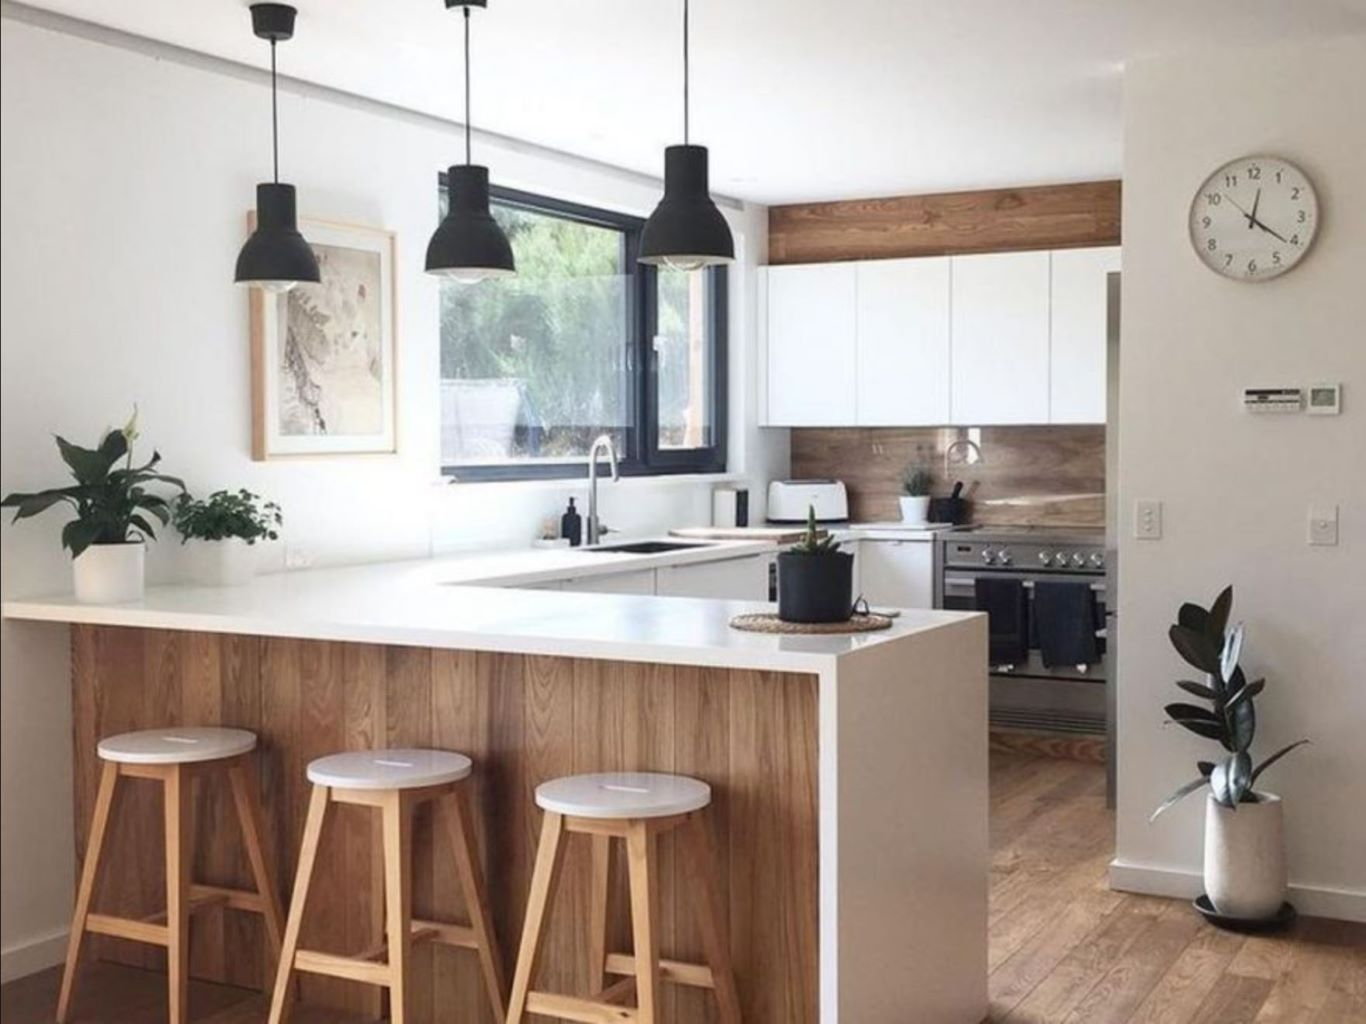 Open-kitchen Contemporary style featuring island countertop